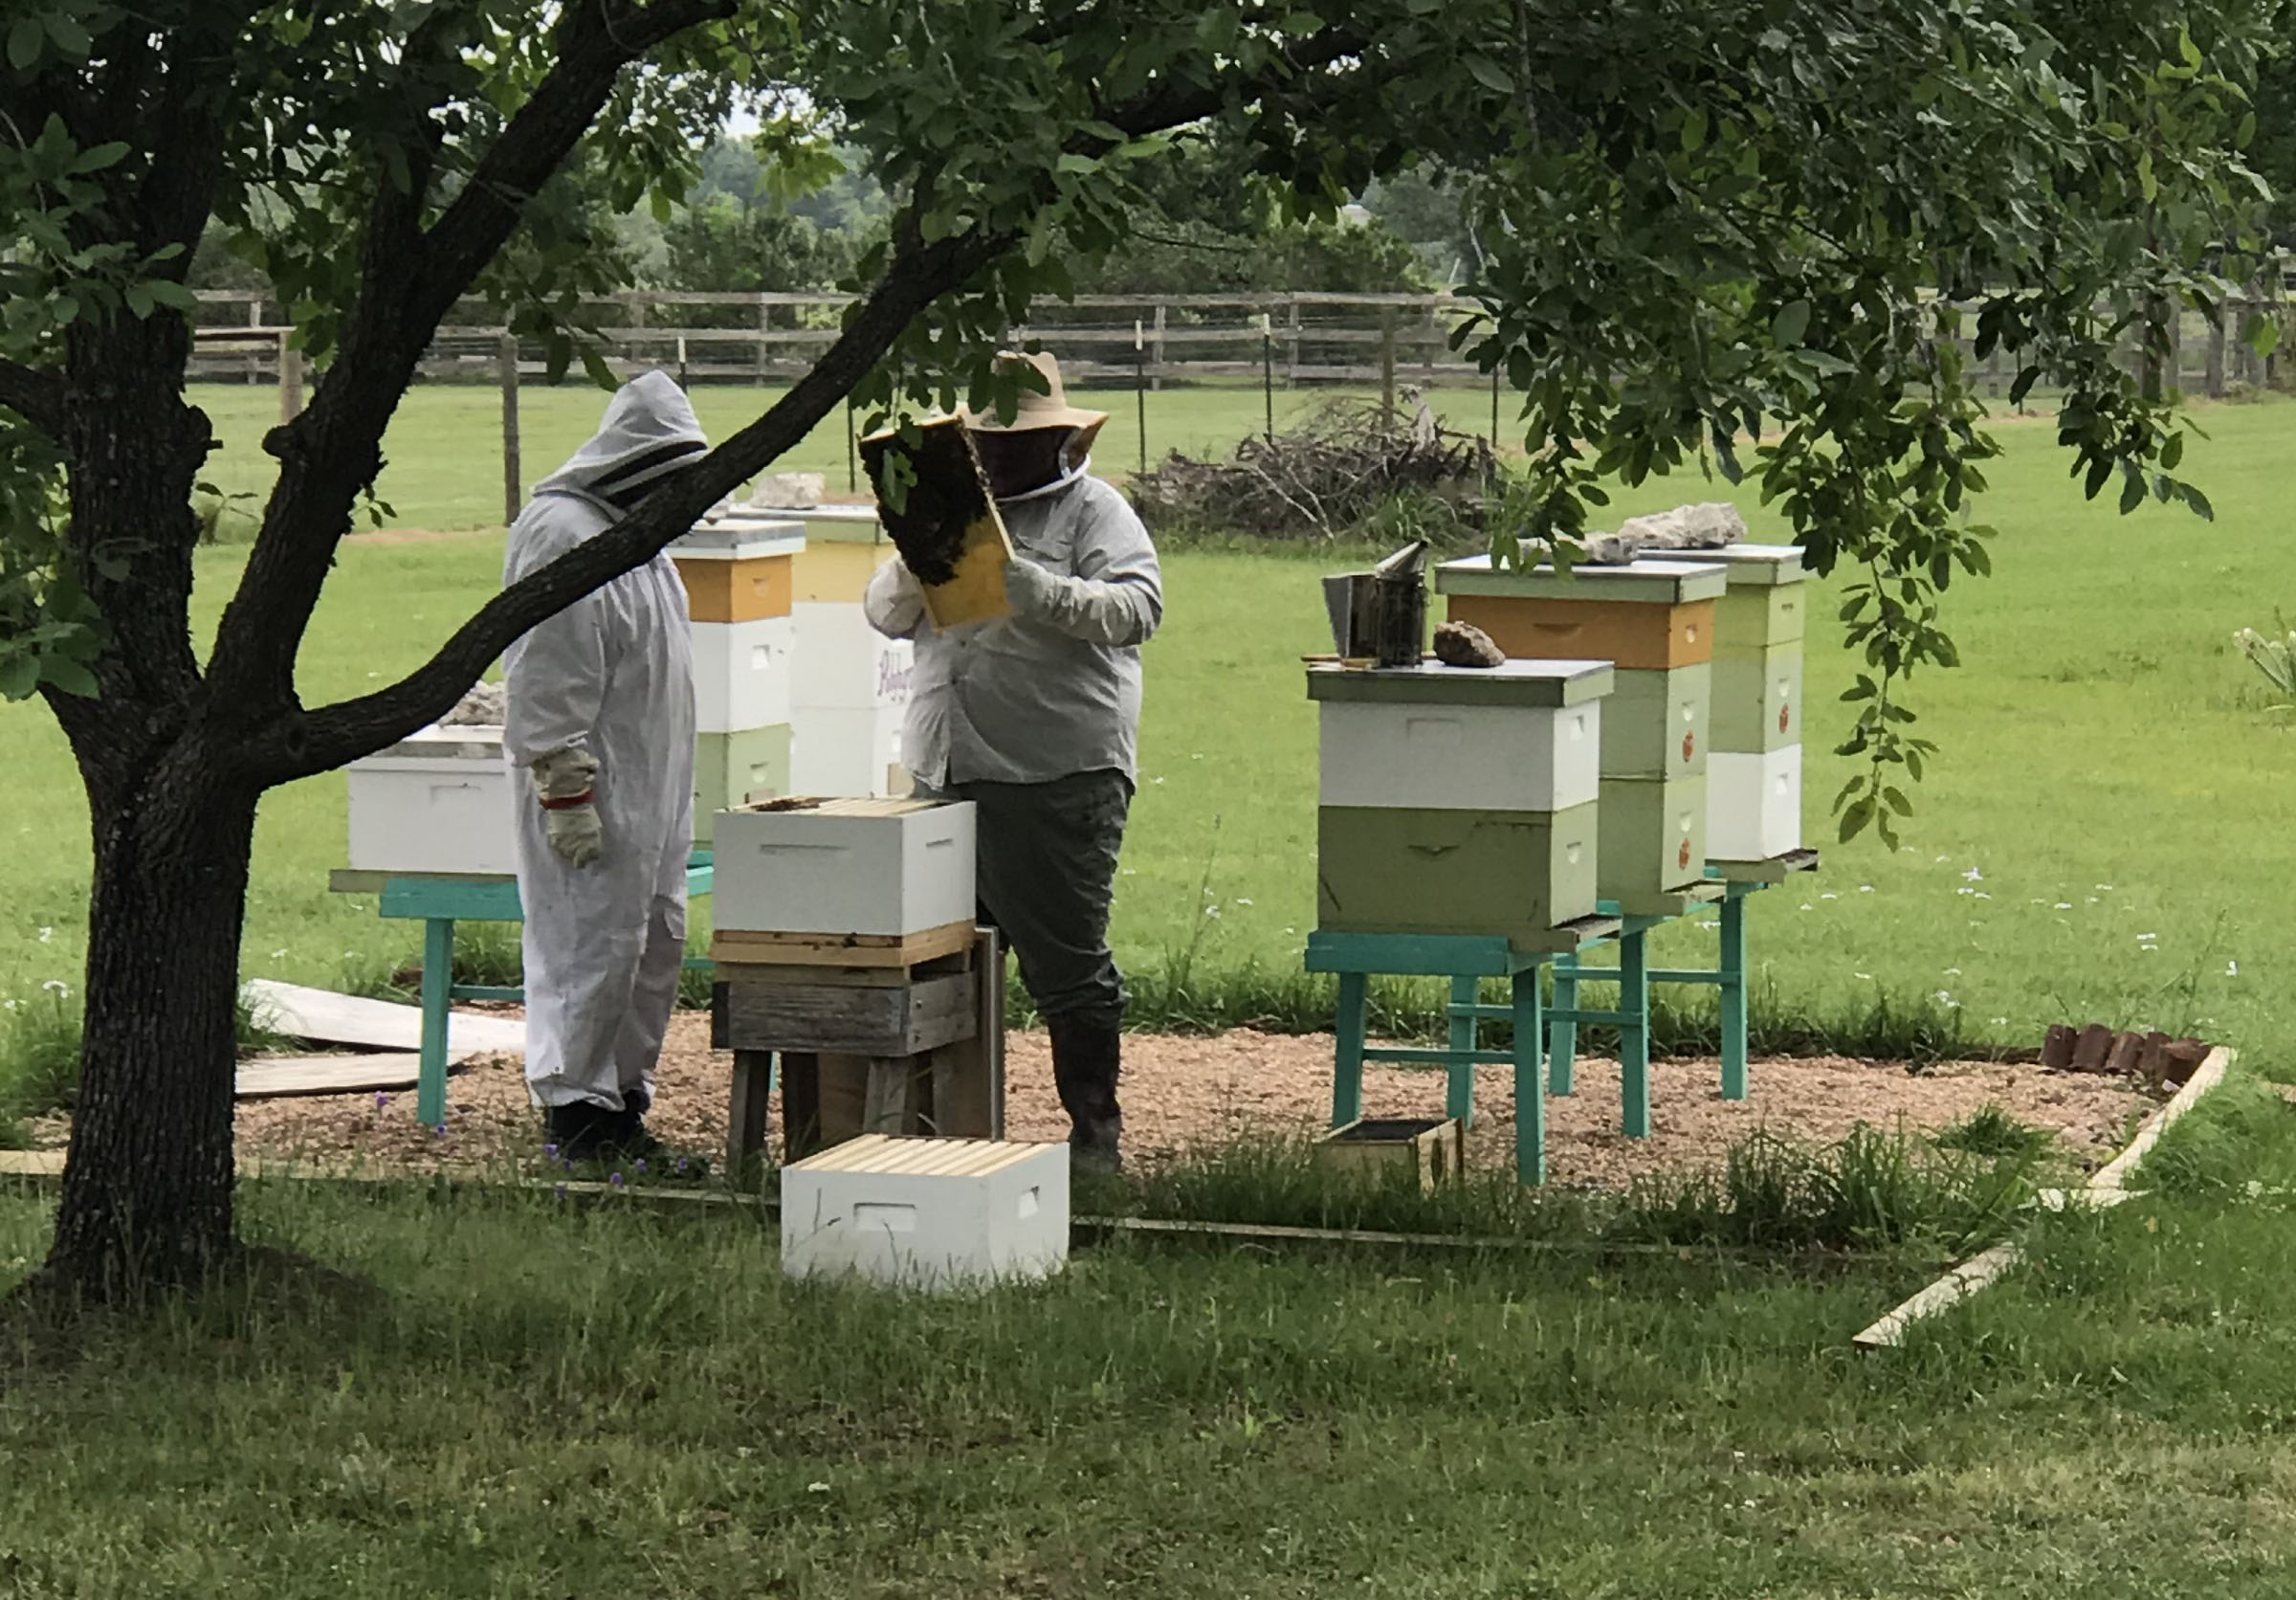 The family of beekeepers checks up on the bees.